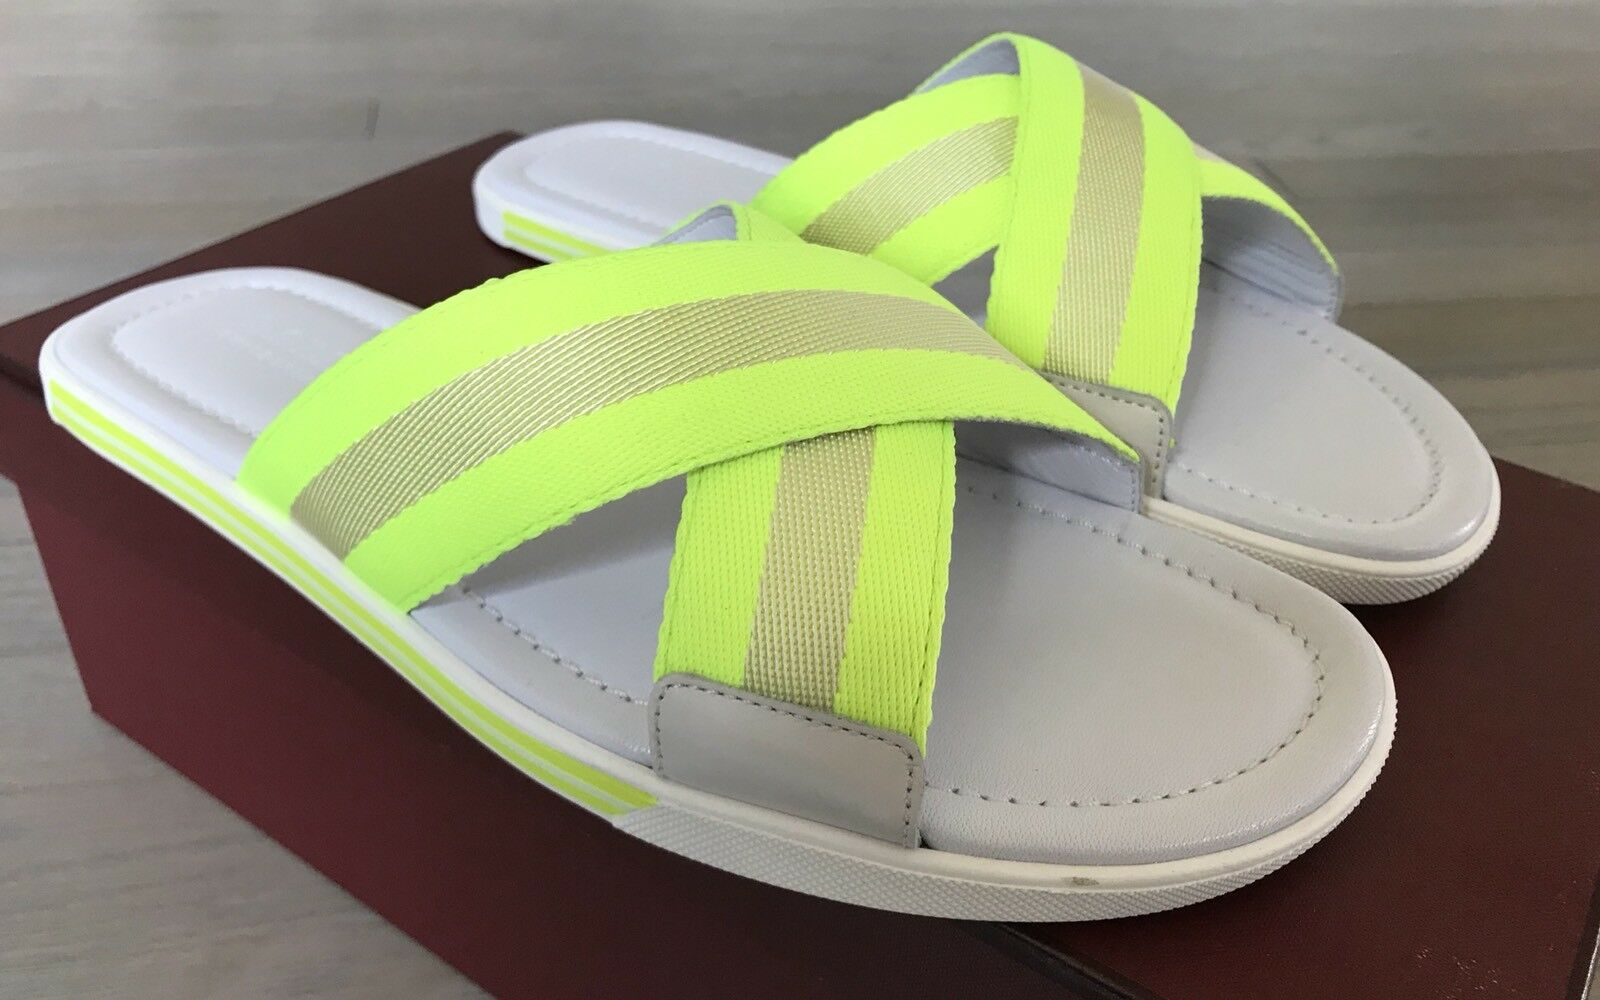 aecaaaf4f7 500 Bonks White and Yellow Pelle Sandals size US 9 Made in Italy ...